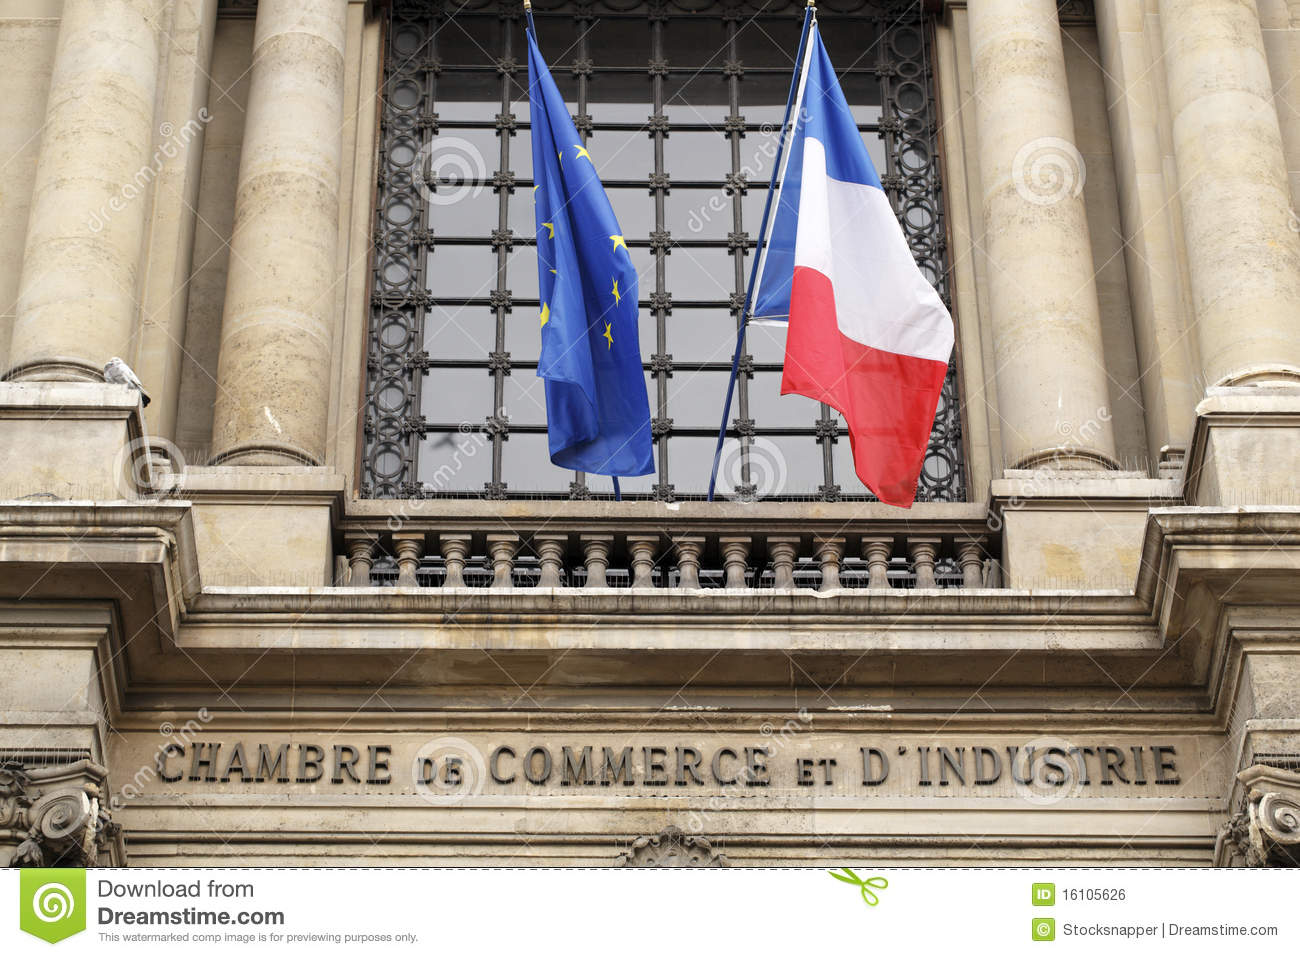 The paris chamber of commerce stock photo image 16105626 for Chambre de commerce international de paris